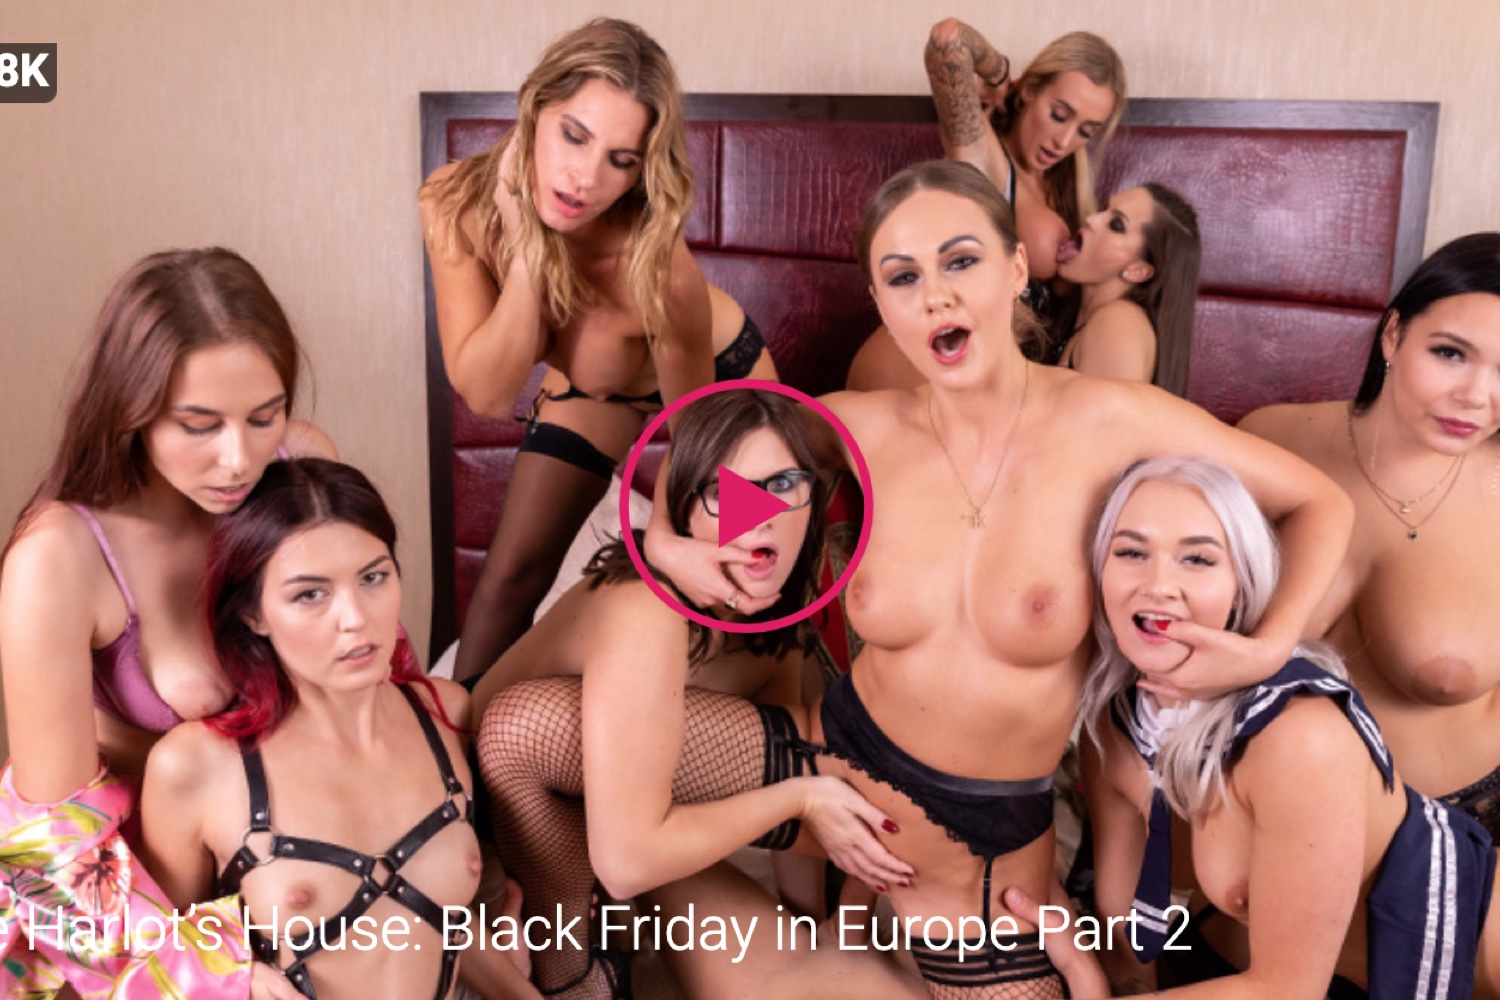 The Harlot's House: Black Friday in Europe Part 2 - Tina Kay VR Porn - Jennifer Jane VR Porn - Barbara Bieber VR Porn - Cindy Shine VR Porn - Daisy Lee VR Porn - Sofia Lee VR Porn - Leidy De Leon VR Porn- Marilyn Sugar VR Porn - Tina Kay Virtual Reality Porn - Jennifer Jane Virtual Reality Porn - Barbara Bieber Virtual Reality Porn - Cindy Shine Virtual Reality Porn - Daisy Lee Virtual Reality Porn - Sofia Lee Virtual Reality Porn - Leidy De Leon Virtual Reality Porn - Marilyn Sugar Virtual Reality Porn